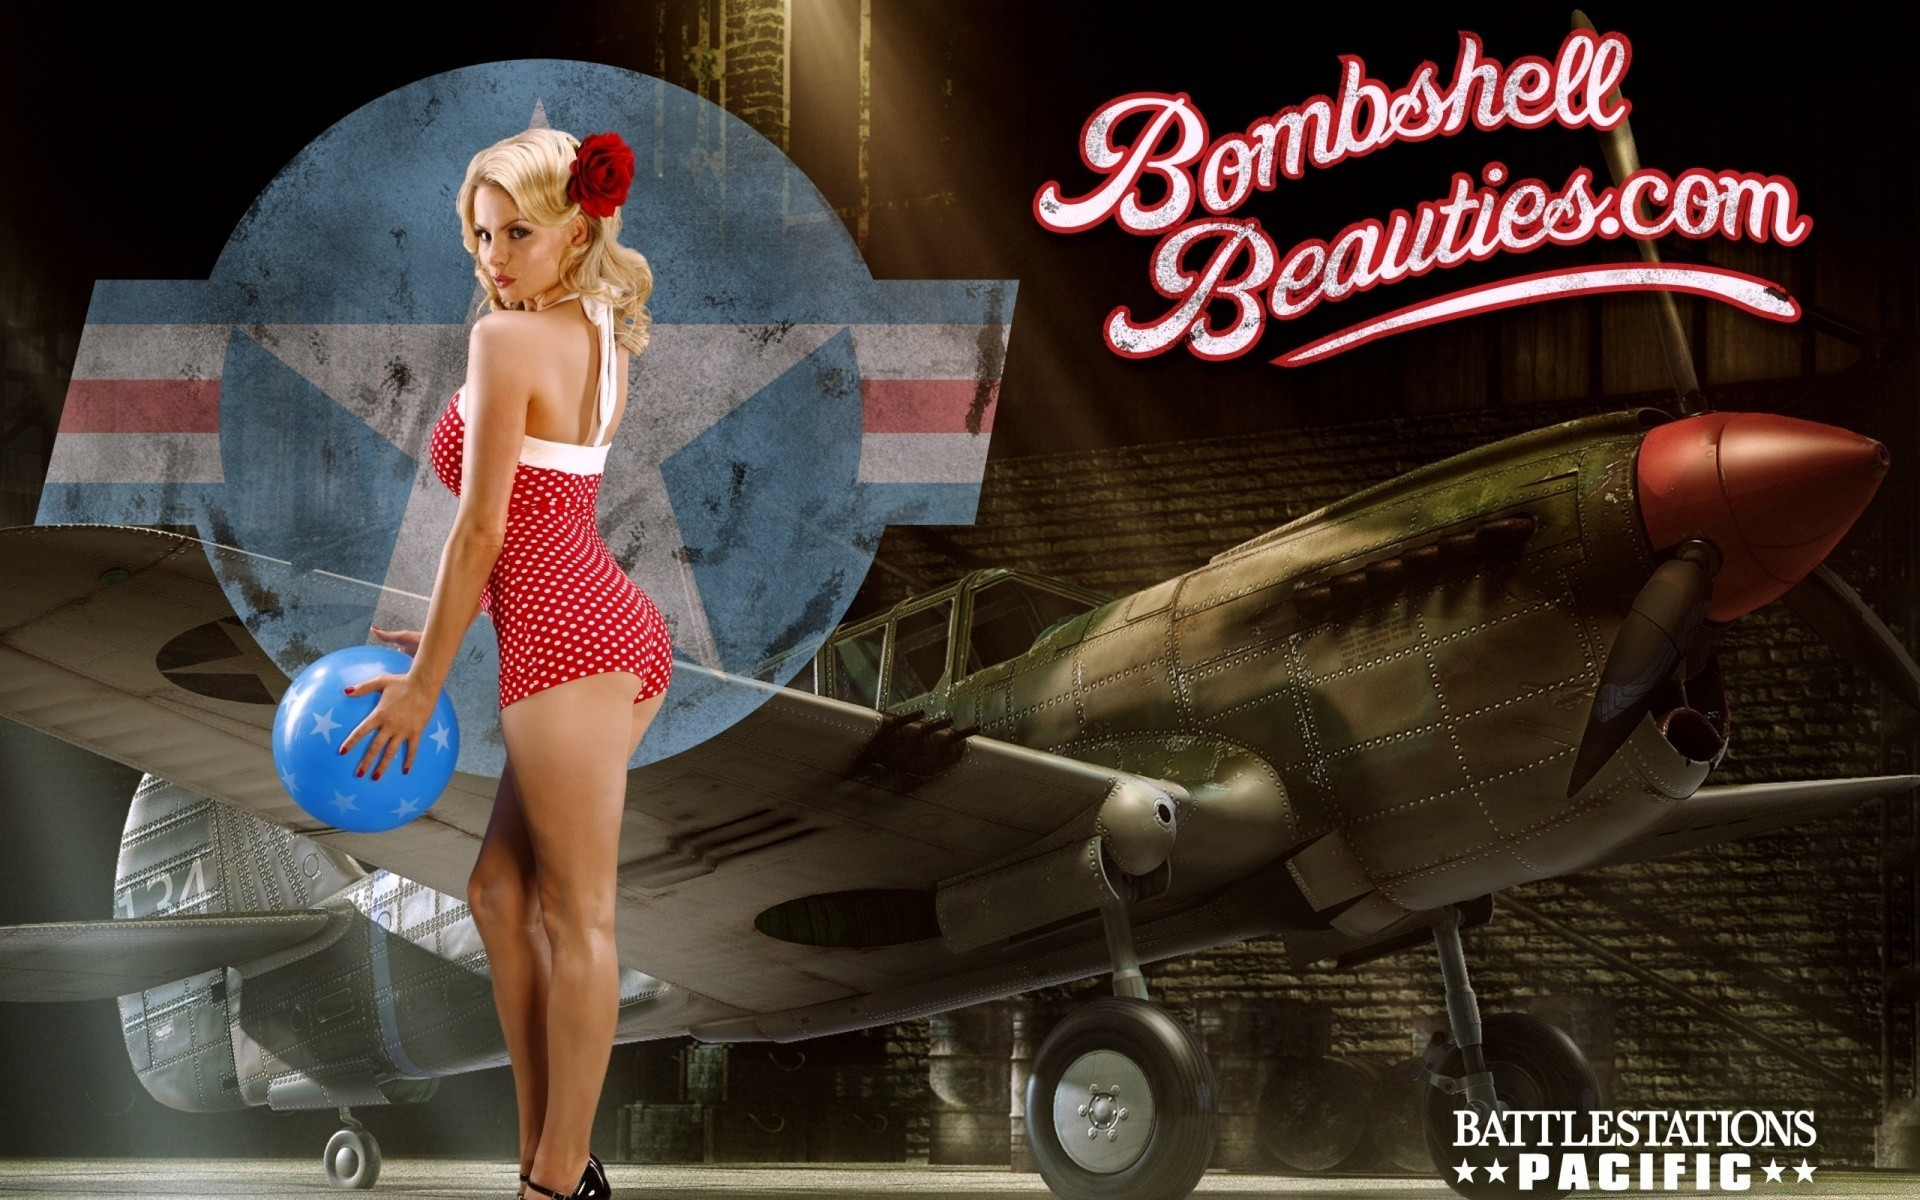 Battlestation Pacific Bombshell Beauties Pin Up Android